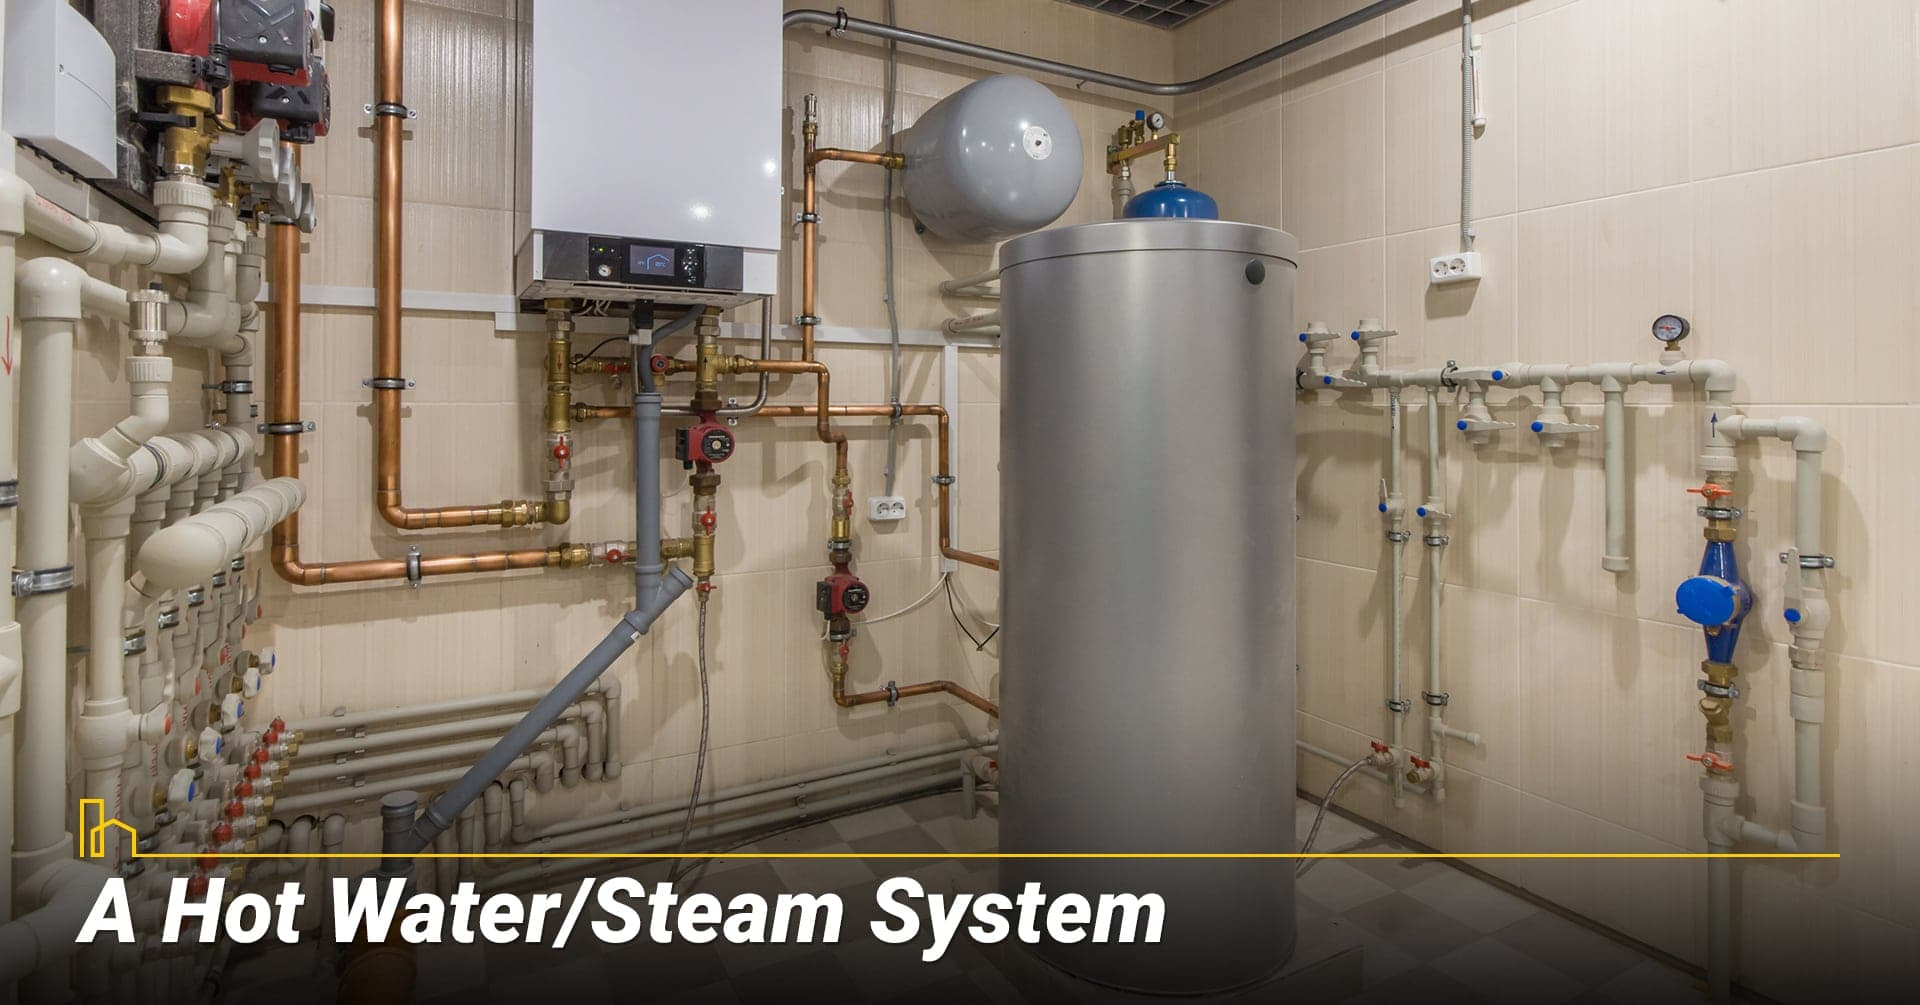 A Hot Water/Steam System, heat your home with hot water system